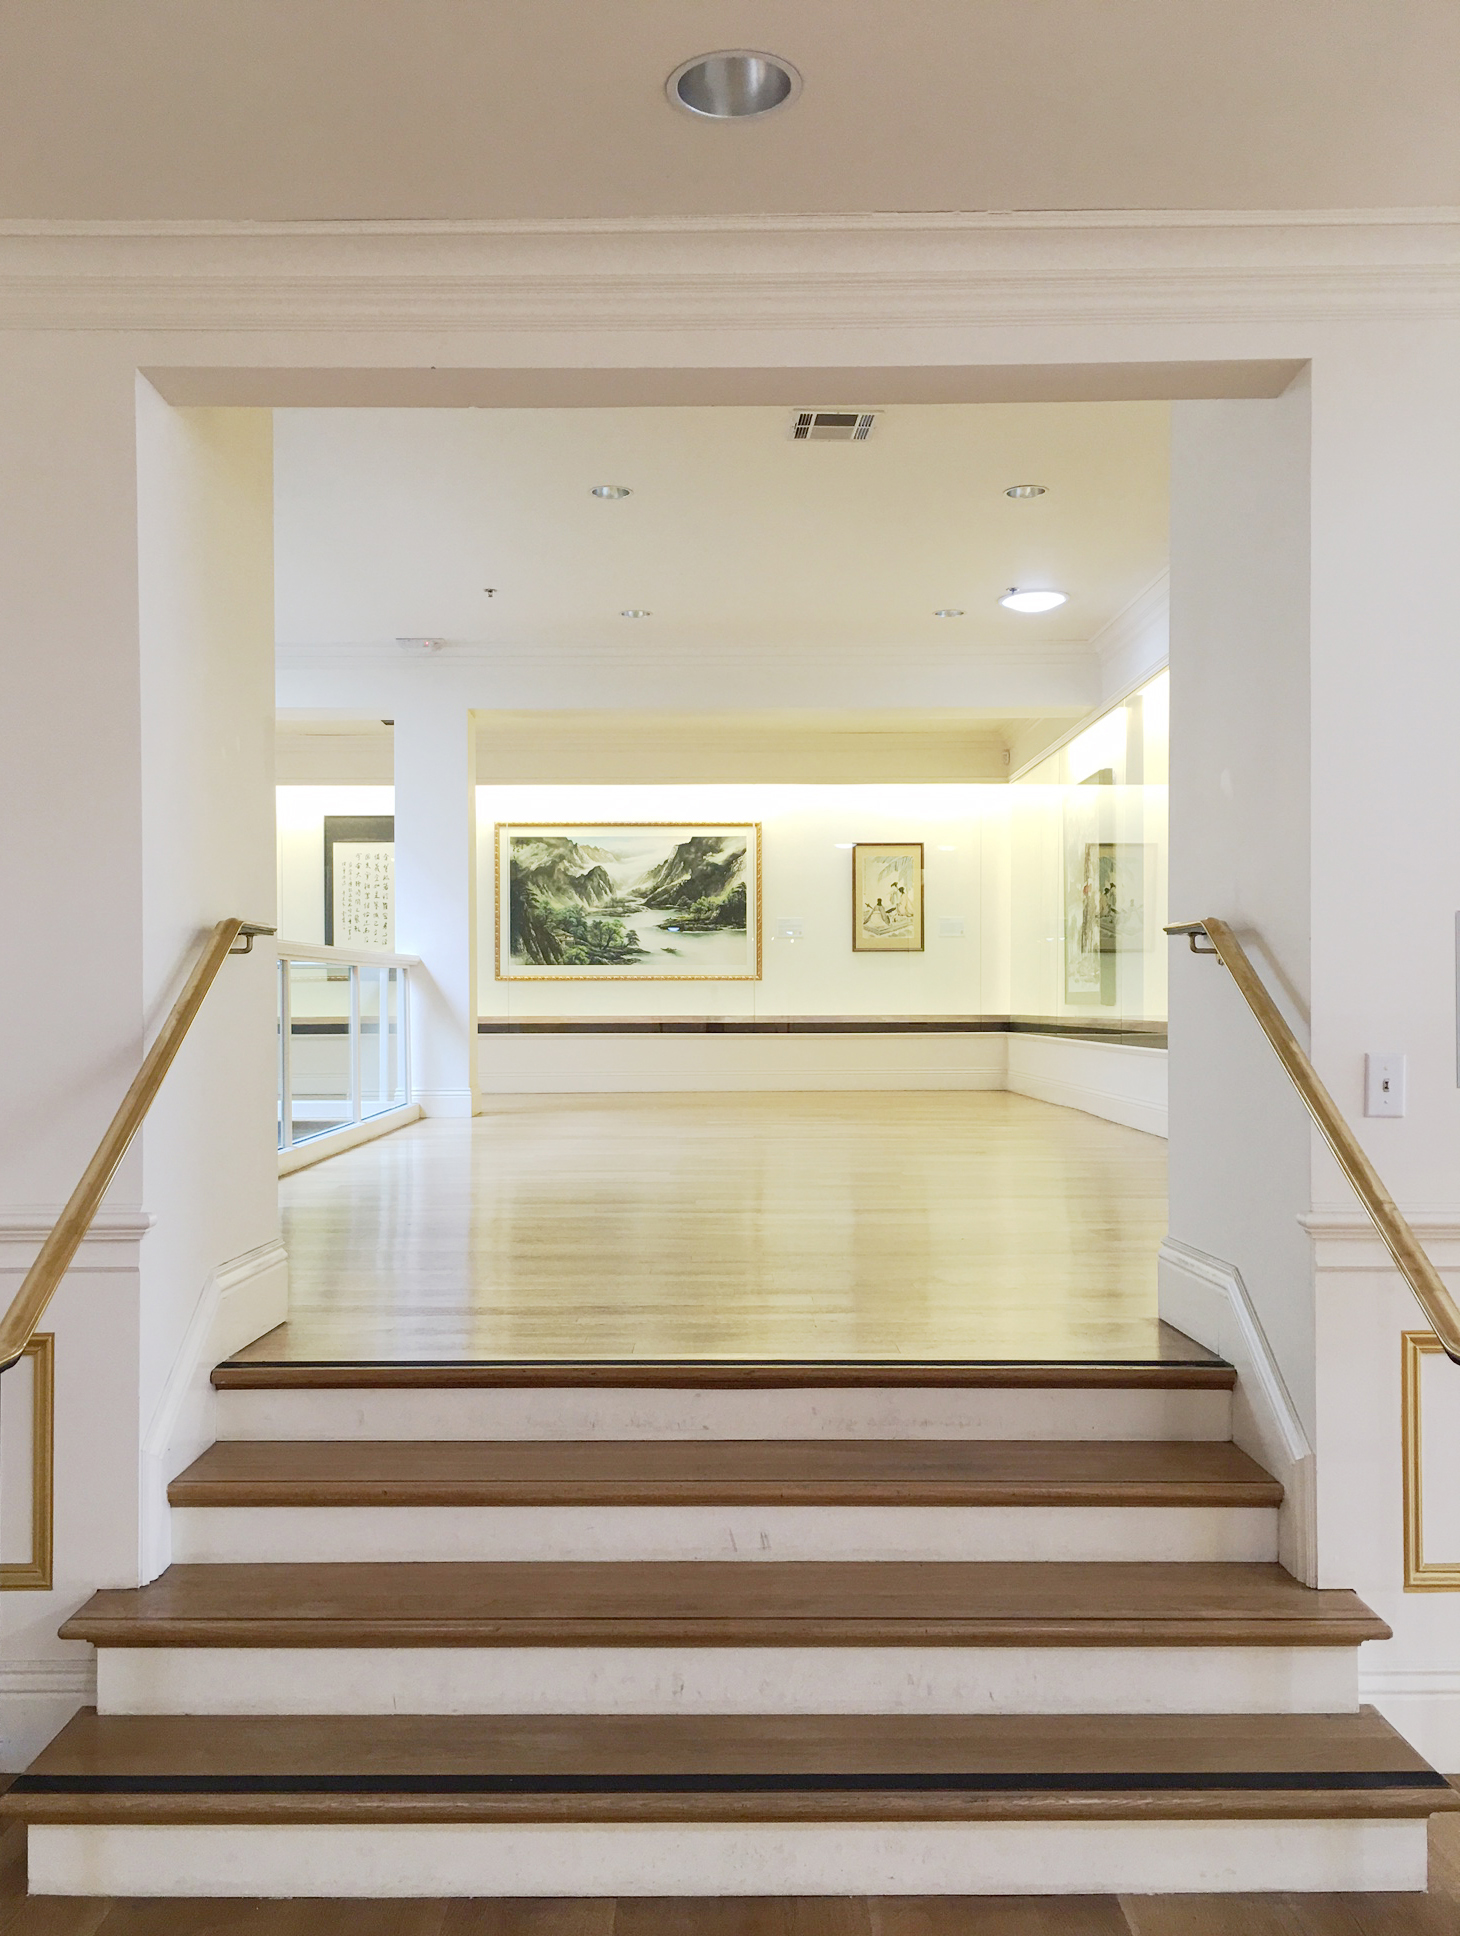 2nd Floor Gallery Entrance